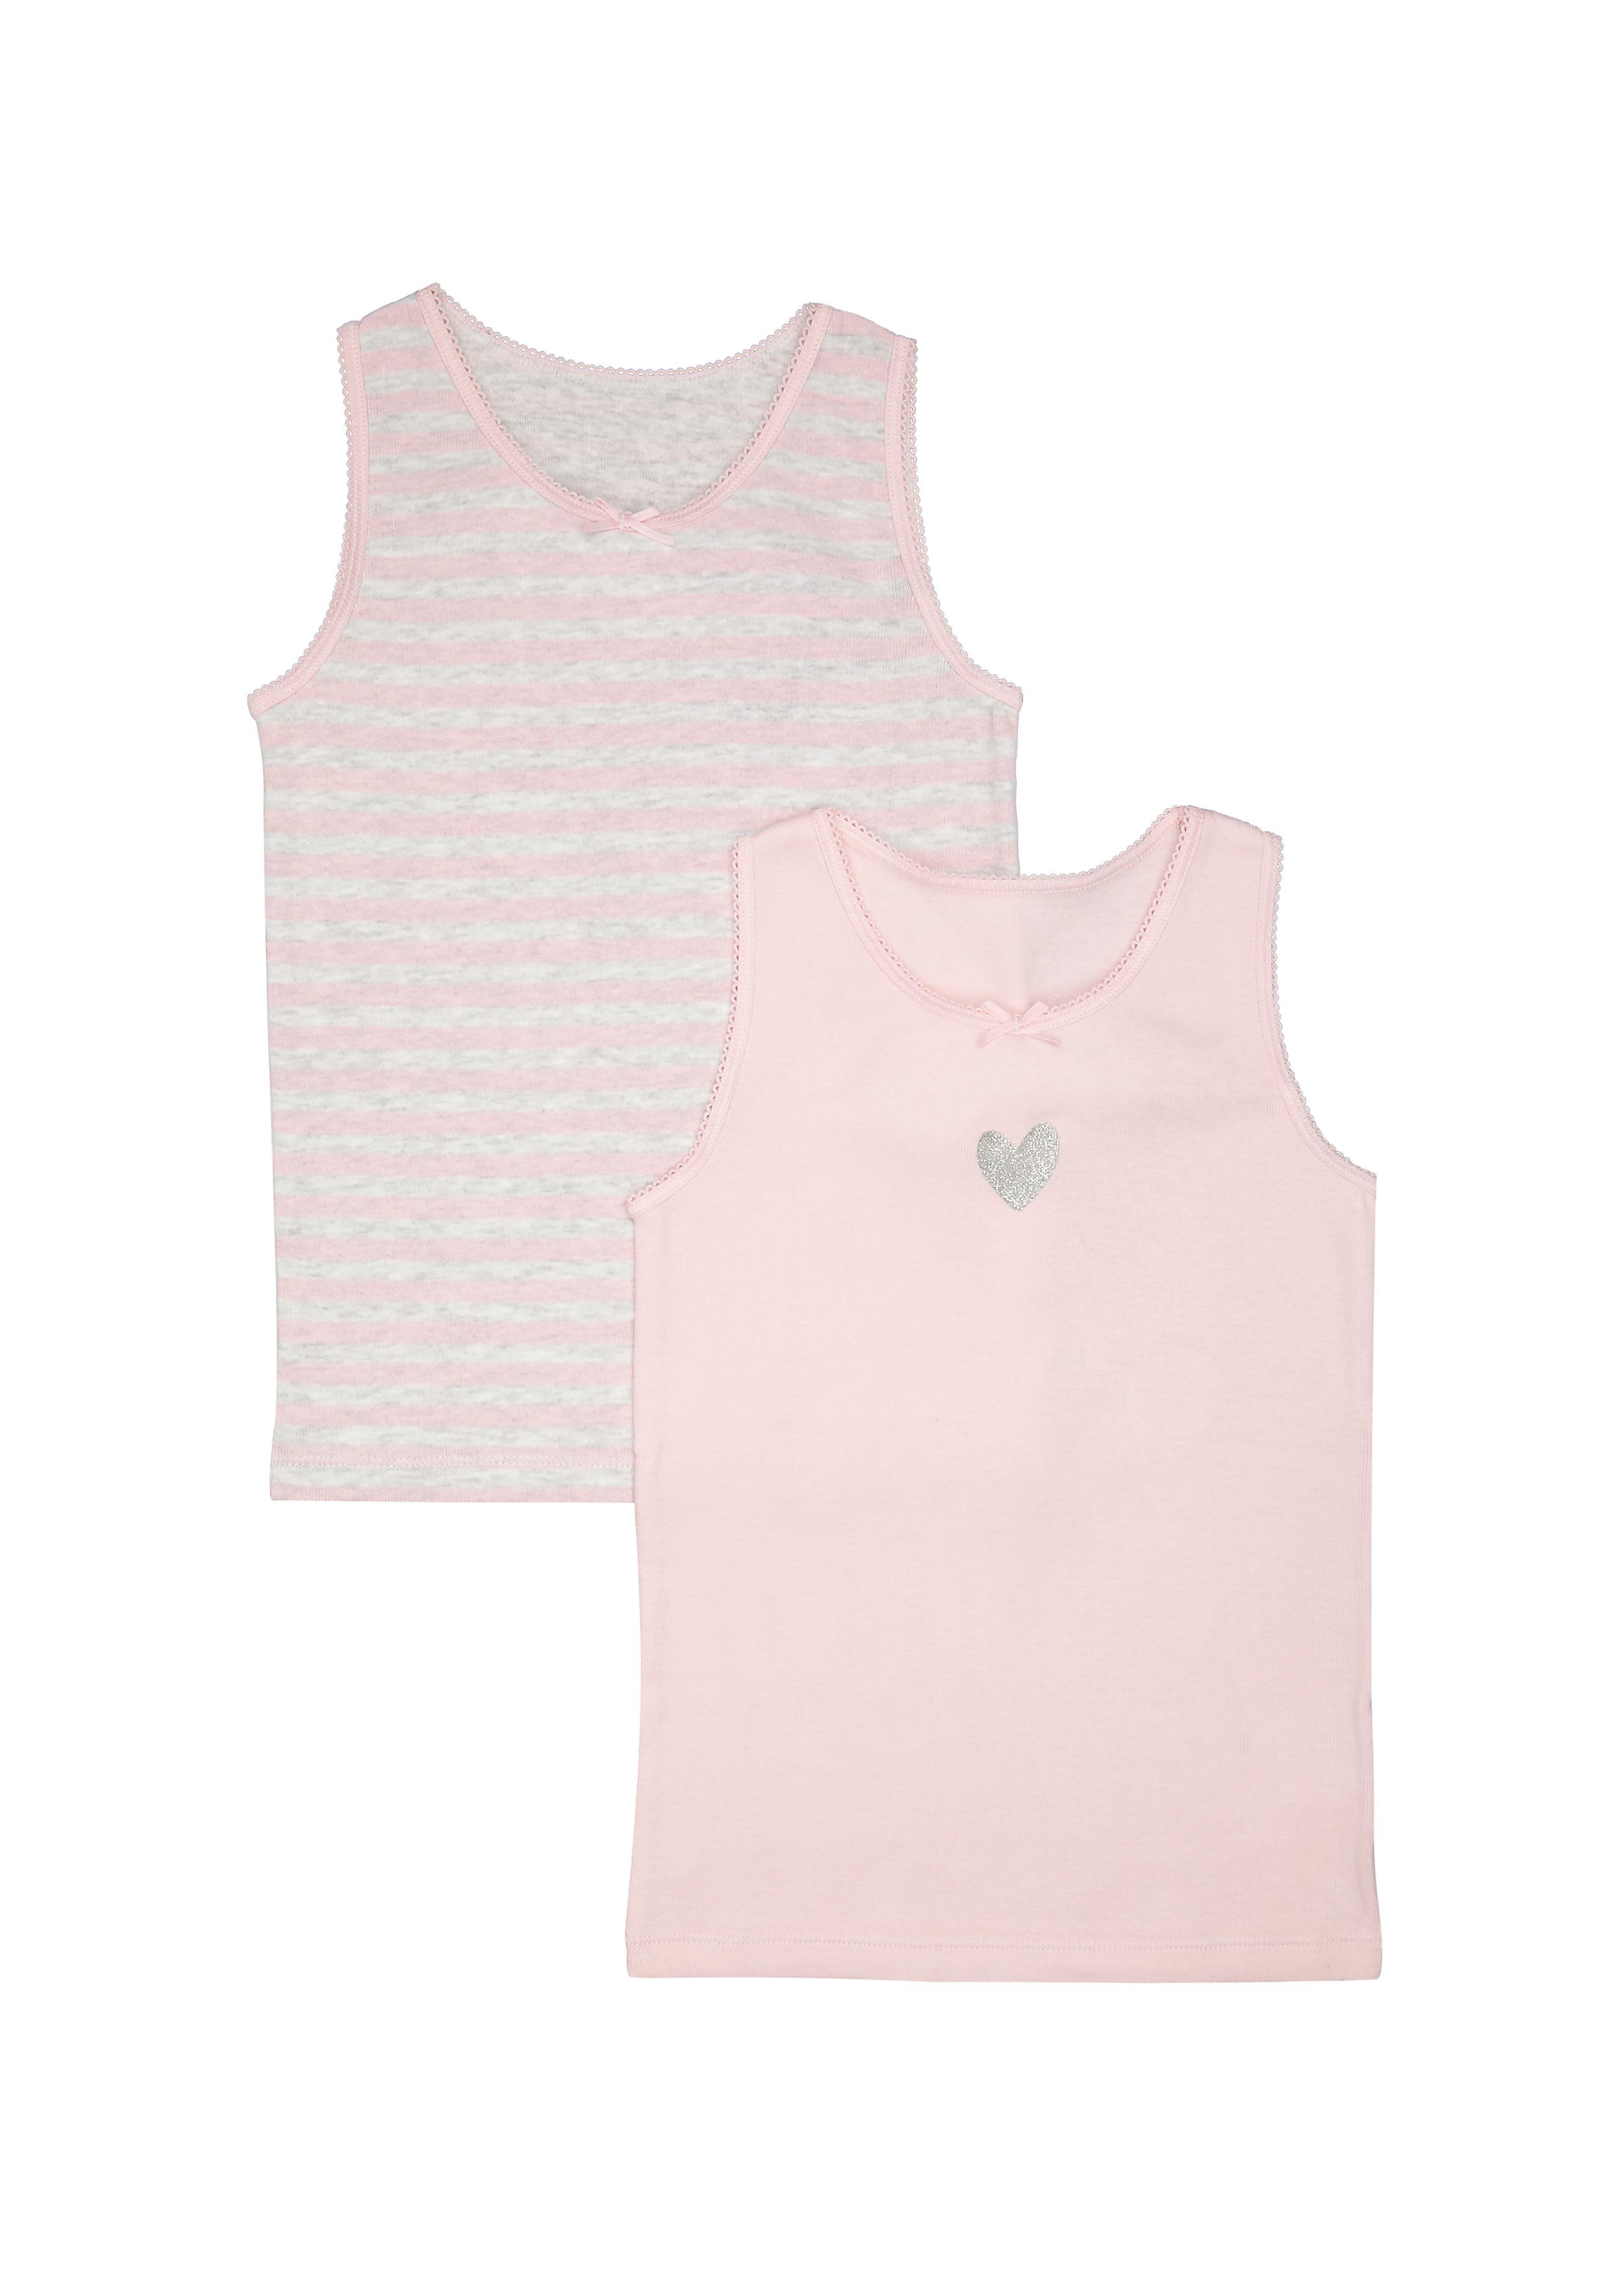 Mothercare | Girls Heart And Stripe Vests - 2 Pack - Pink